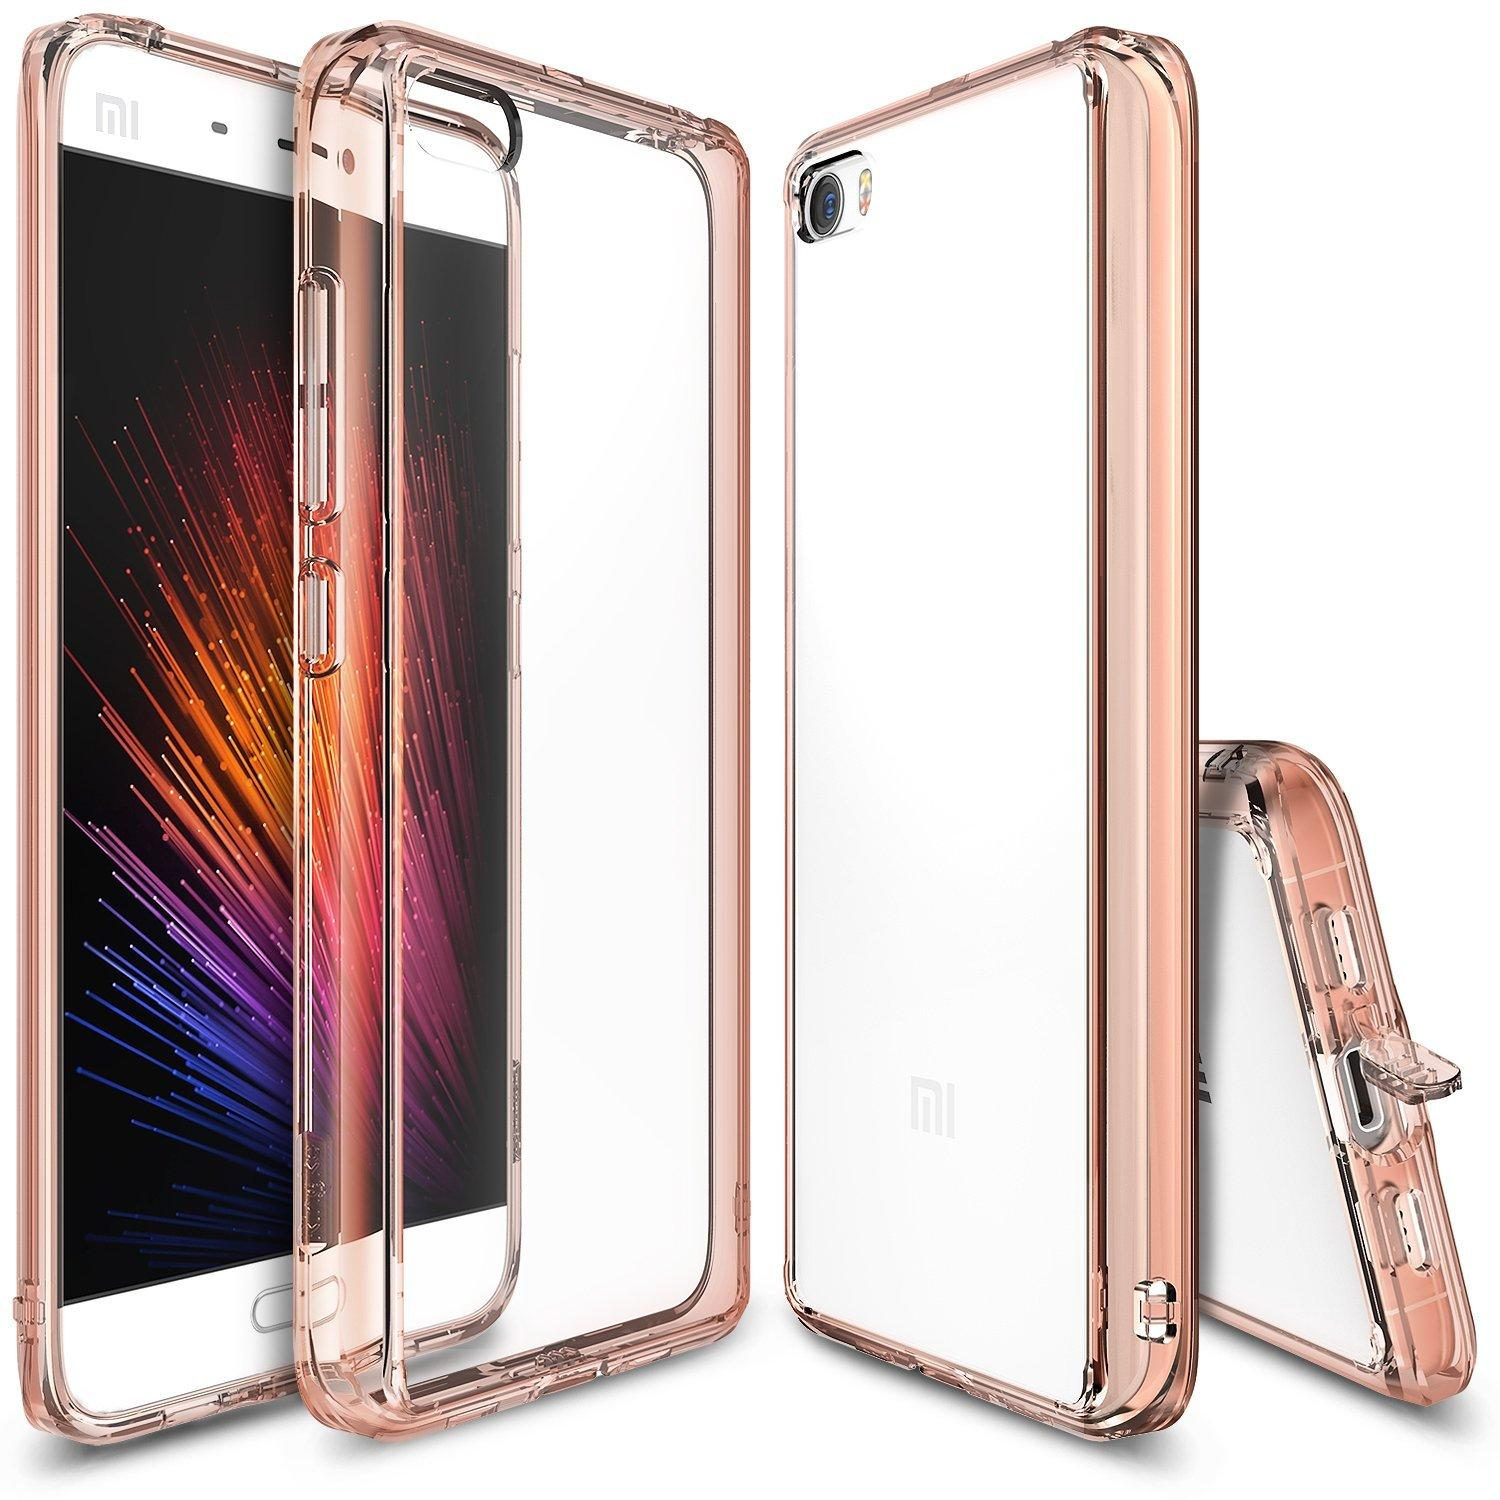 Ringke Fusion Shock Absorption Tpu Bumper Case For Xiaomi Mi 5 Rose Gold Coupon